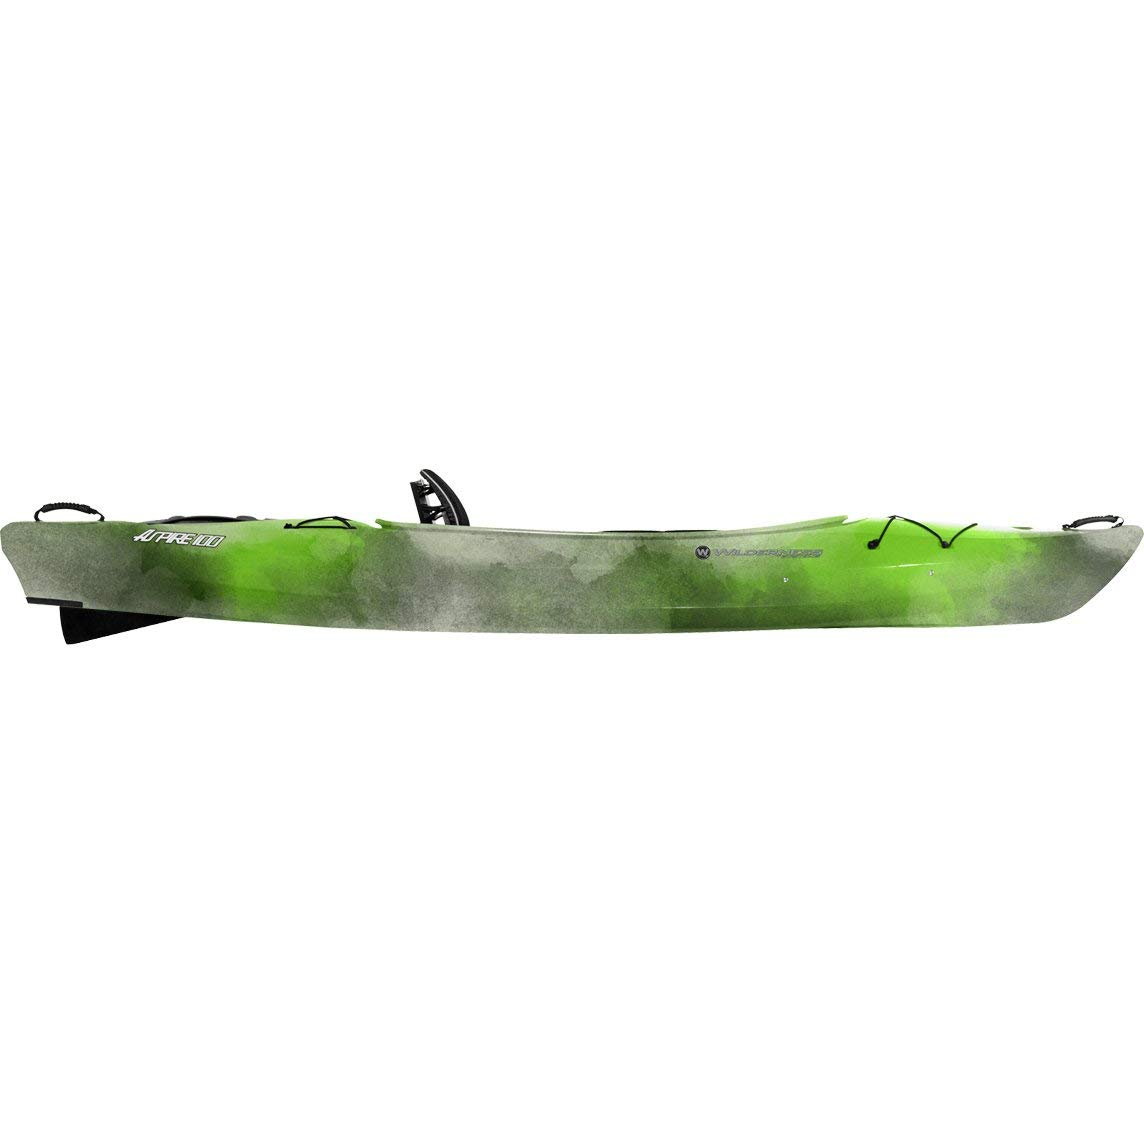 Wilderness Systems Aspire 100 Kayak - Sonar by Wilderness Systems